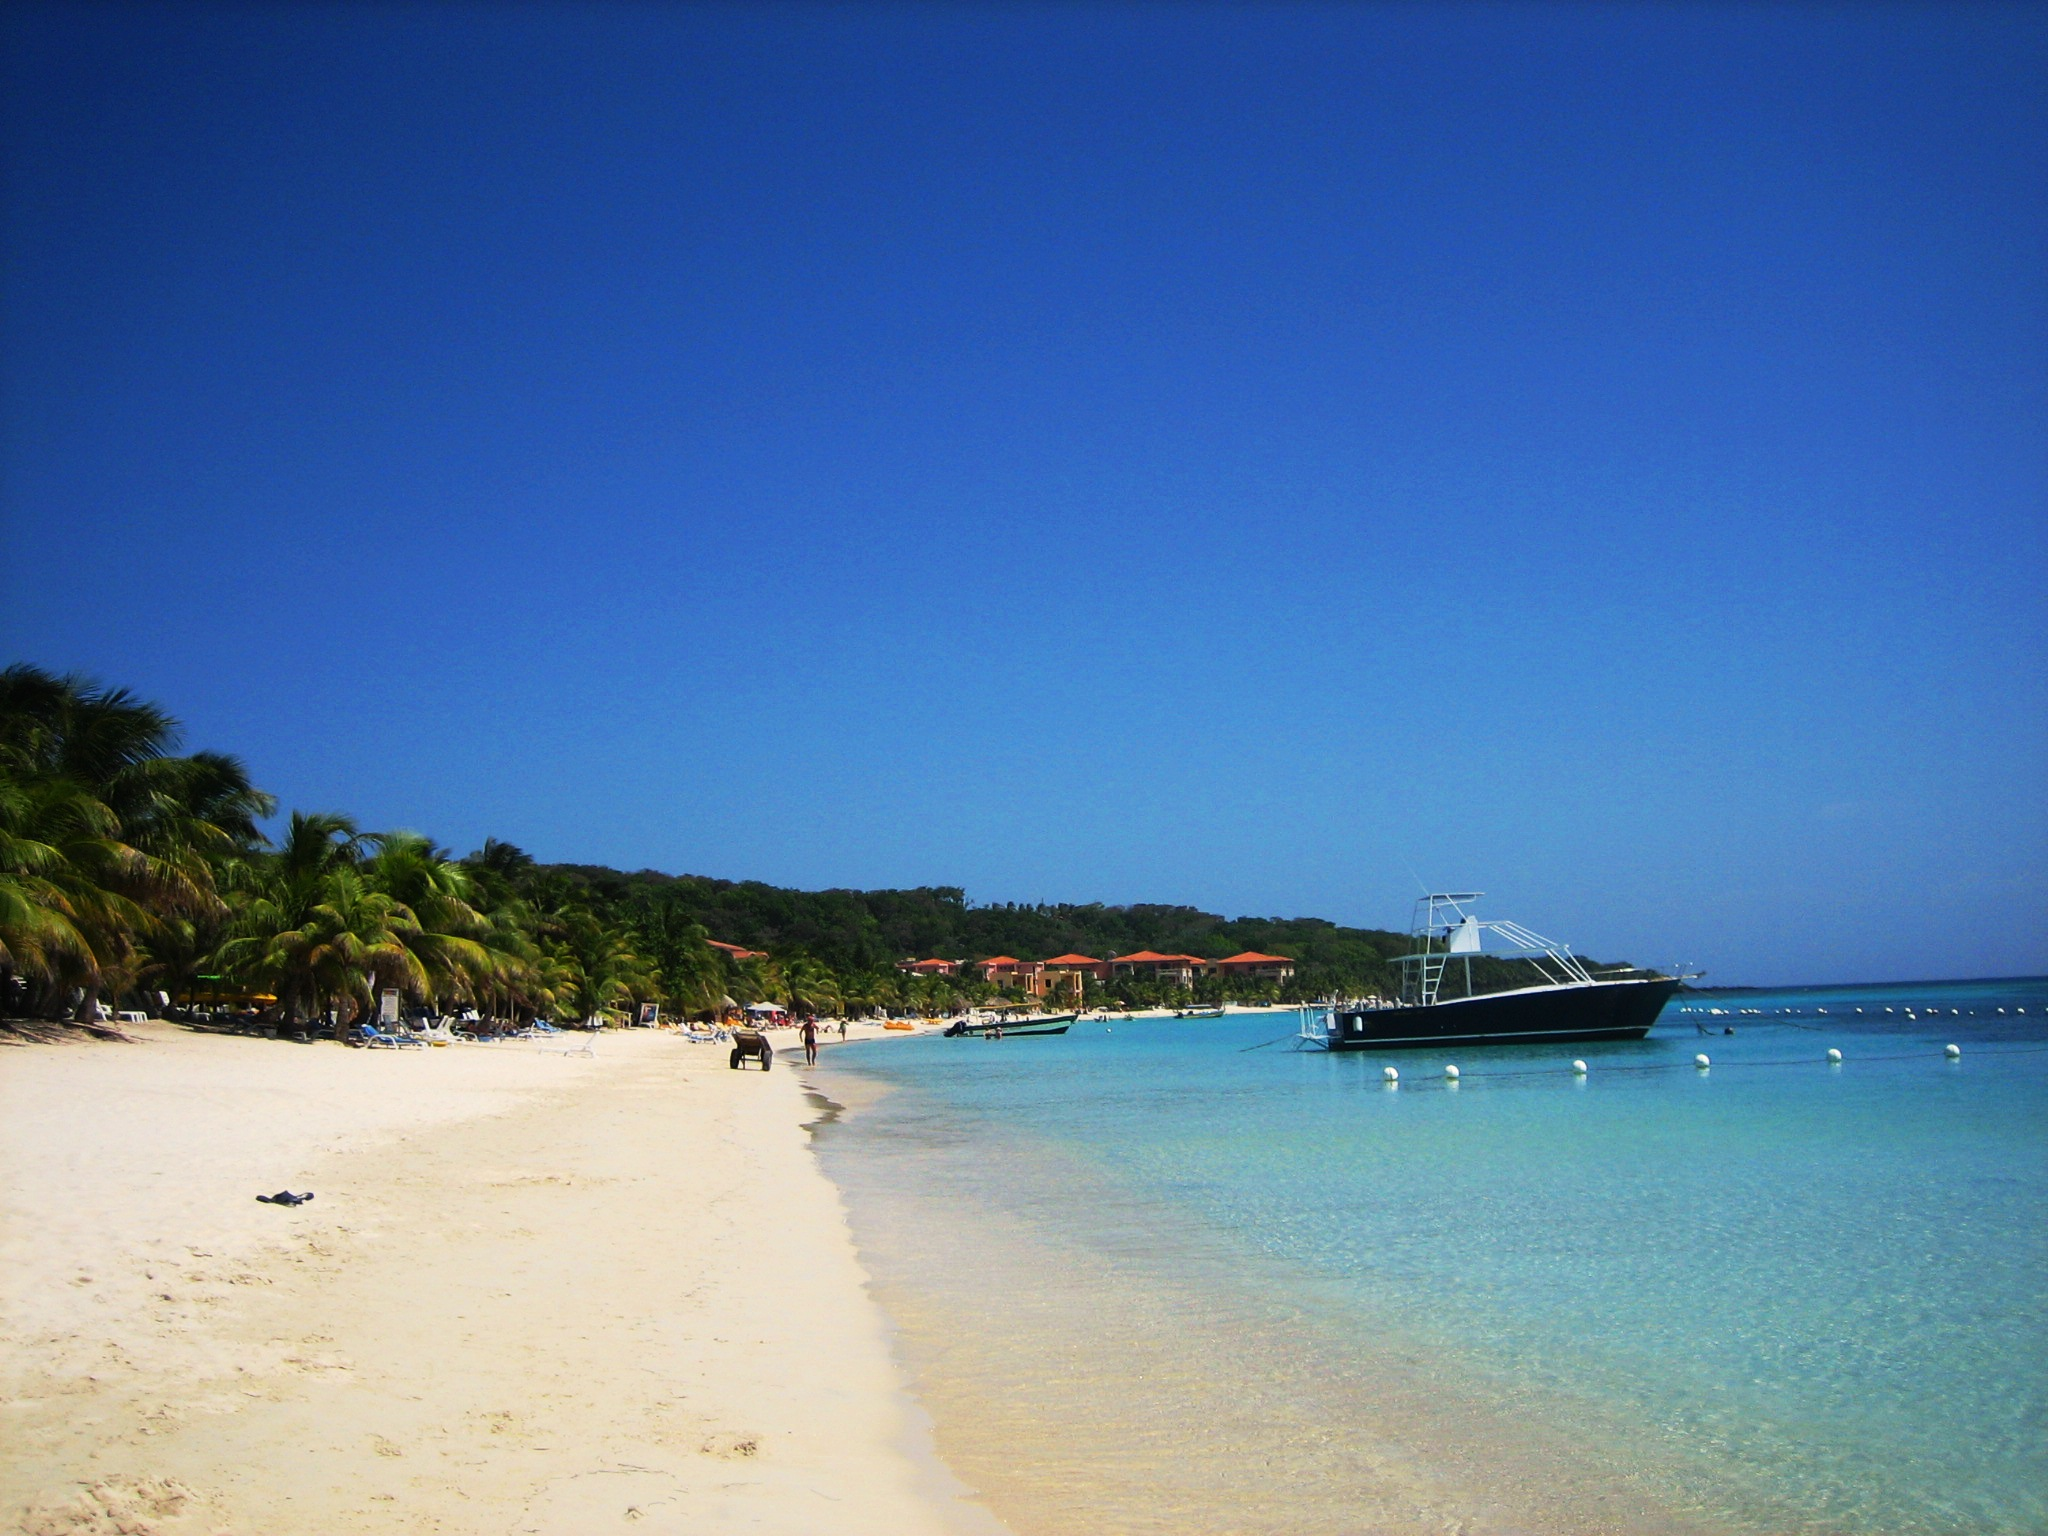 7. West Bay Beach, Honduras